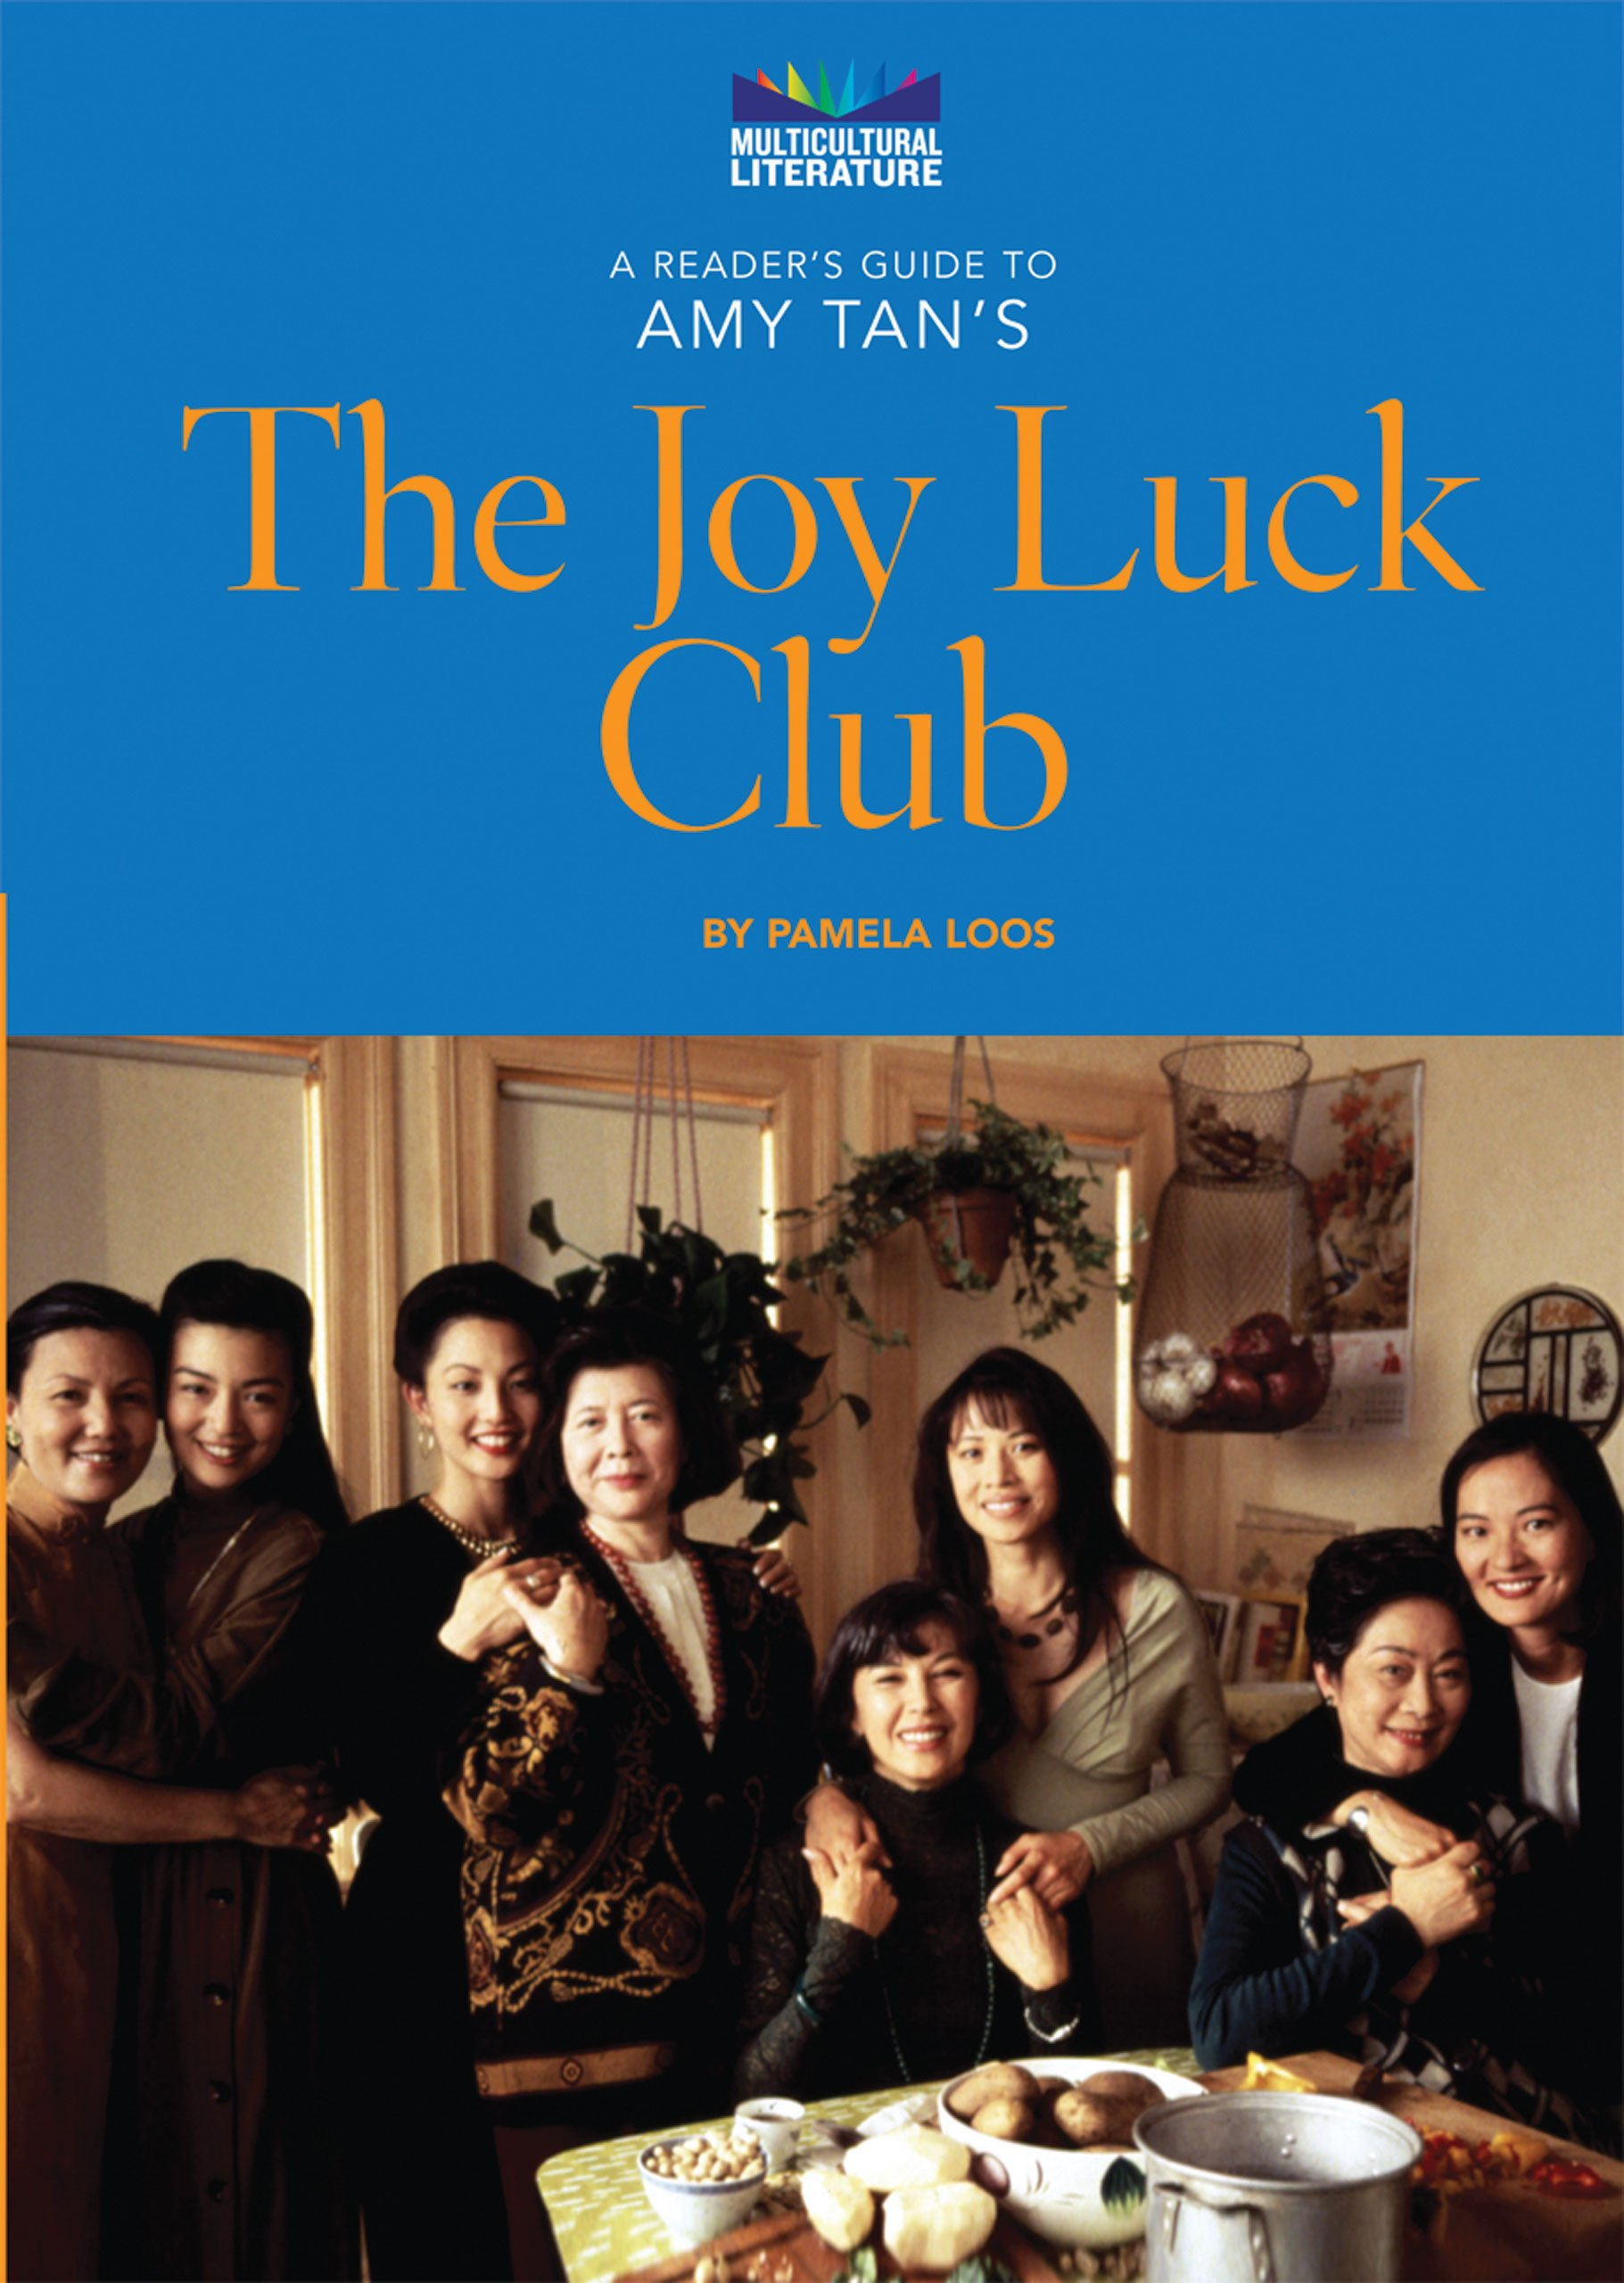 Download A Reader's Guide to Amy Tan's the Joy Luck Club (Multicultural Literature) pdf